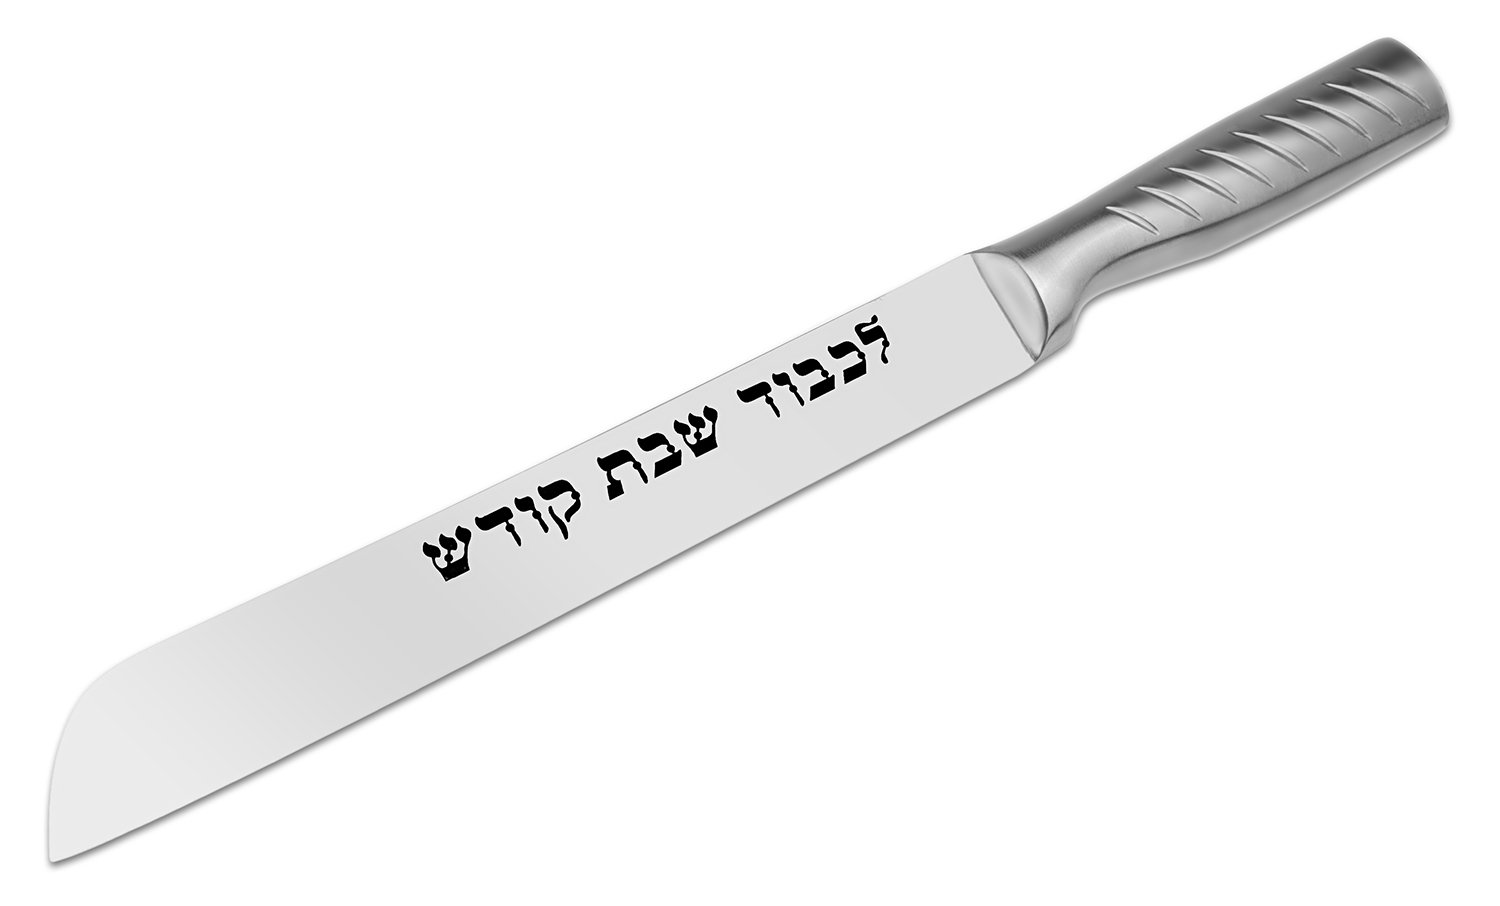 High Carbon Stainless Steel Shabbat Kodesh Classic Challah Knife 1 	Like all high quality ICEL Knifes this Shabbat Kodesh knife is made from high quality carbon stainless steel. The stainless steel knife looks sleek & beautiful and at the same time very strong in quality and can be sharpened over and over. This knife is custom designed with a 5-inch designed handle and an 8-inch straight blade which have engraved lkuved Shabbat kodesh. This quality Shabbat kodesh challah knife comes with a very nice gift packaging perfect for gift to newlyweds, new homeowners or for any upgrade Shabbat table.